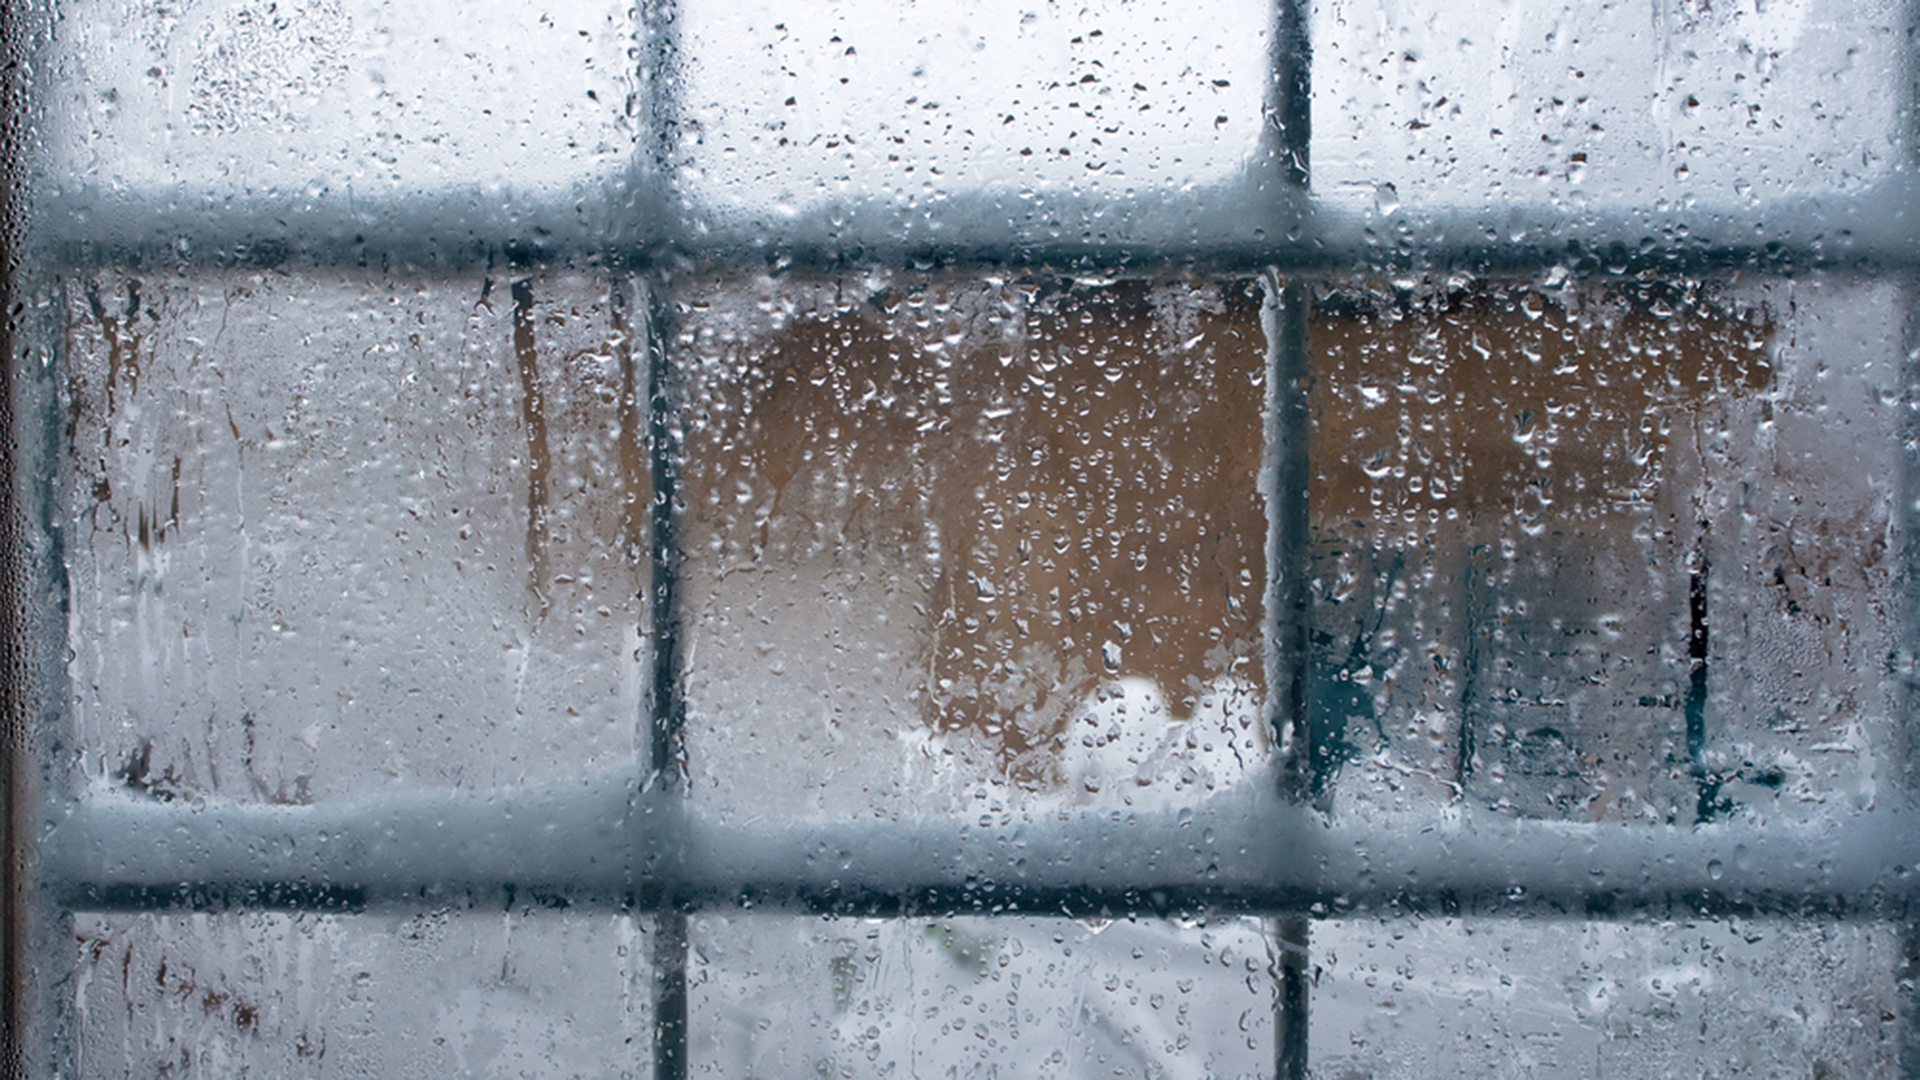 Winter window, drops of water and snowflakes on a window pane.; Shutterstock ID 122111422; PO: david-today